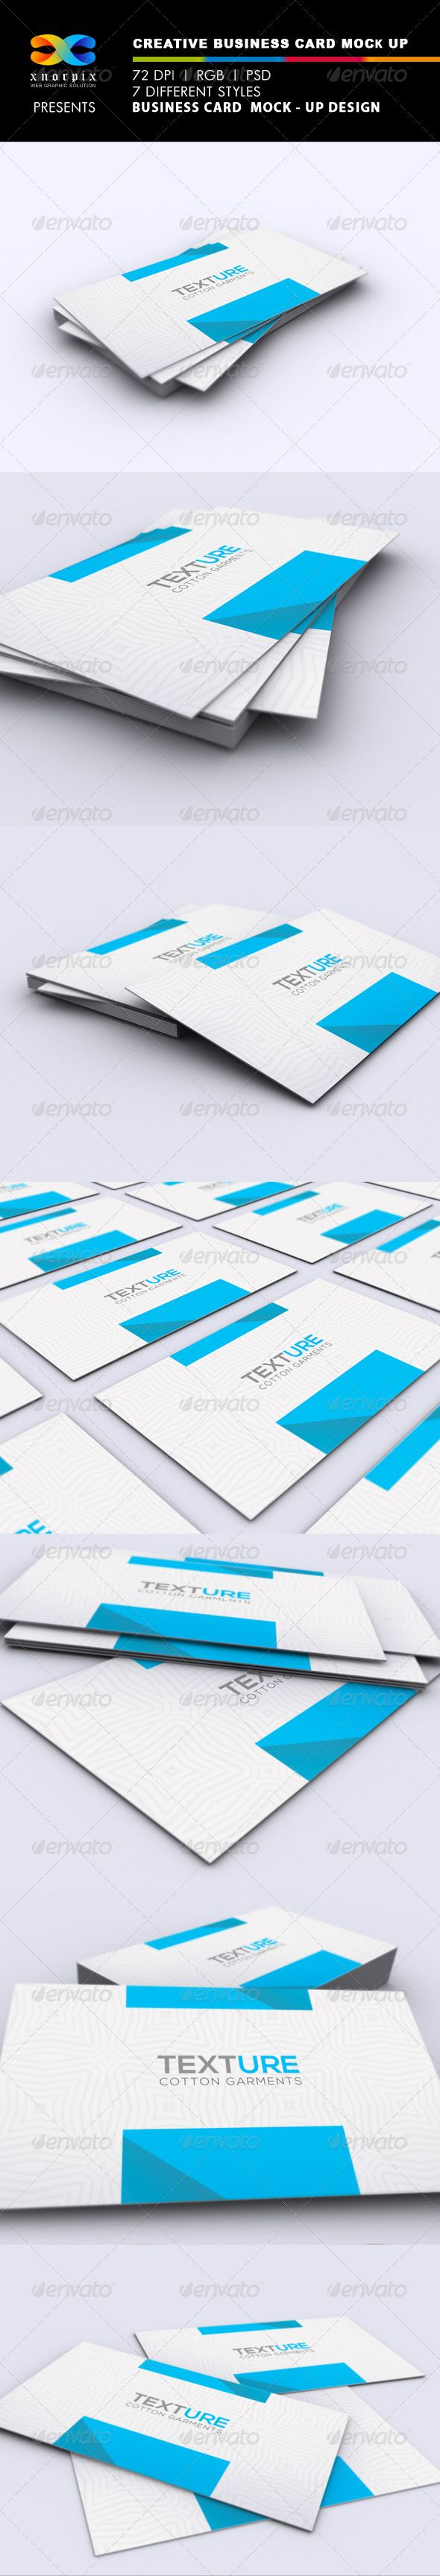 717 best business card mockup images on pinterest miniatures realistic business card mock up colourmoves Image collections